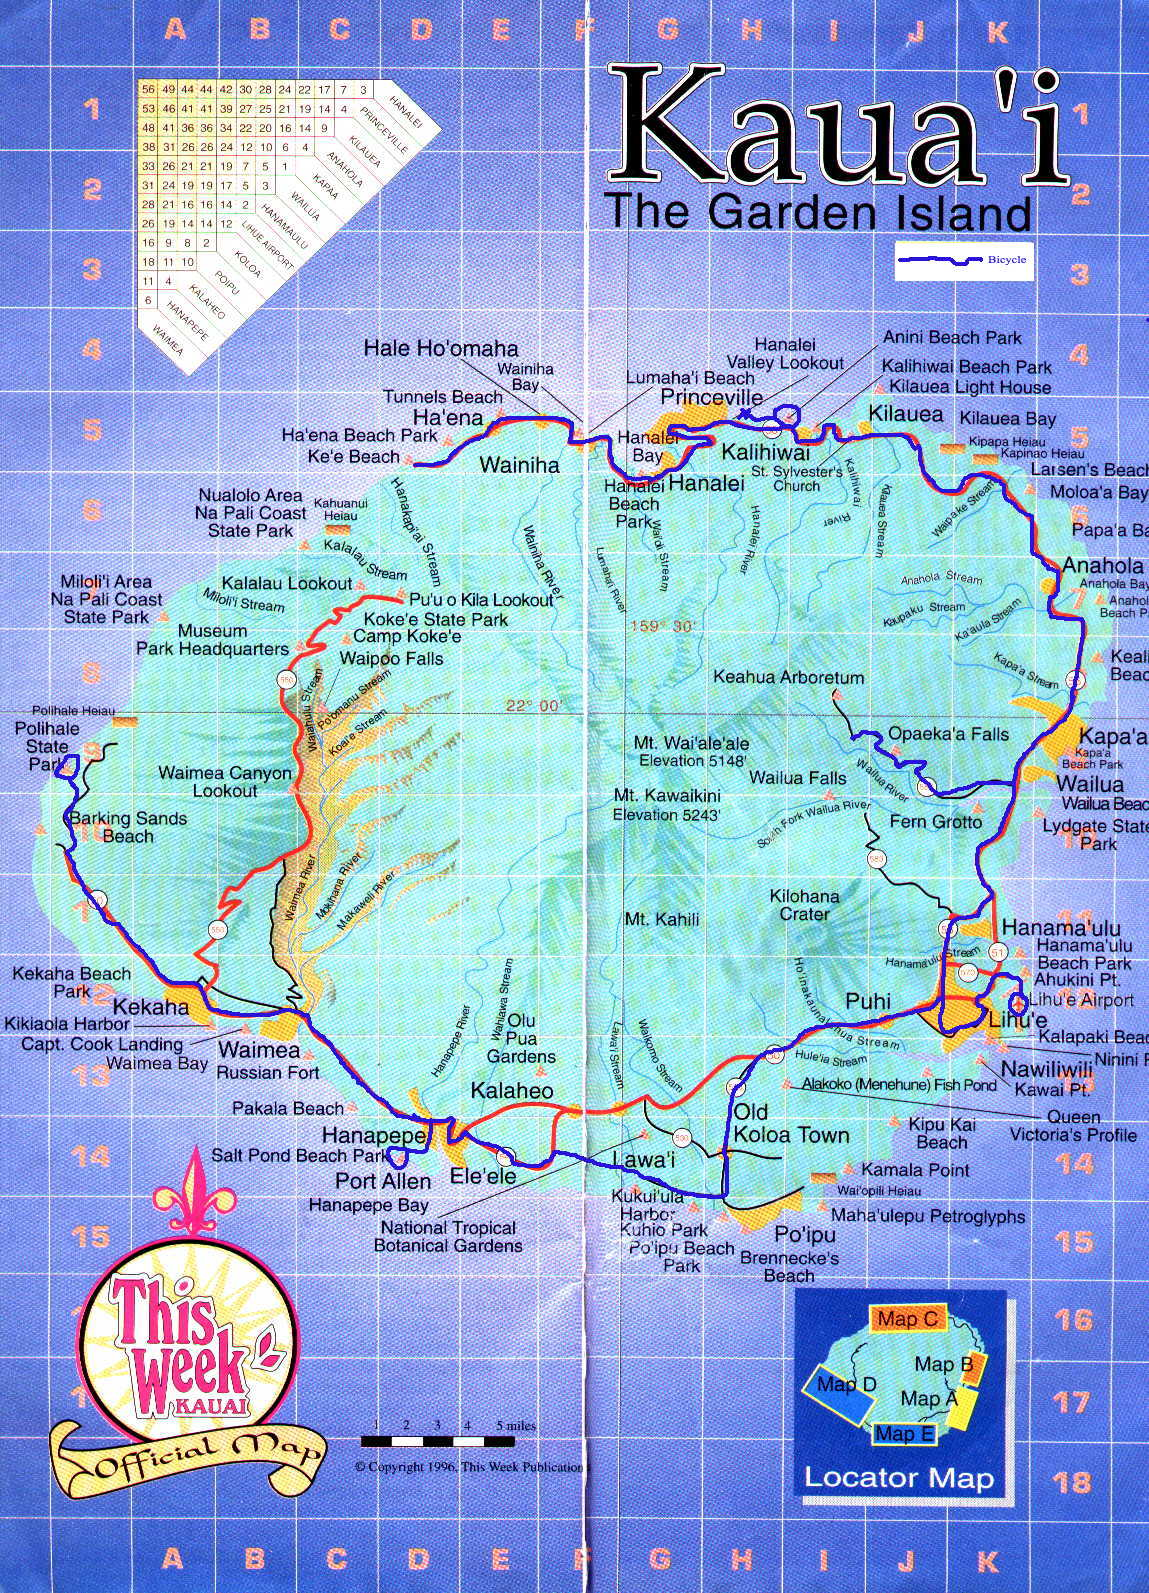 Kauai Tourist Map 52517 – Kauai Tourist Map